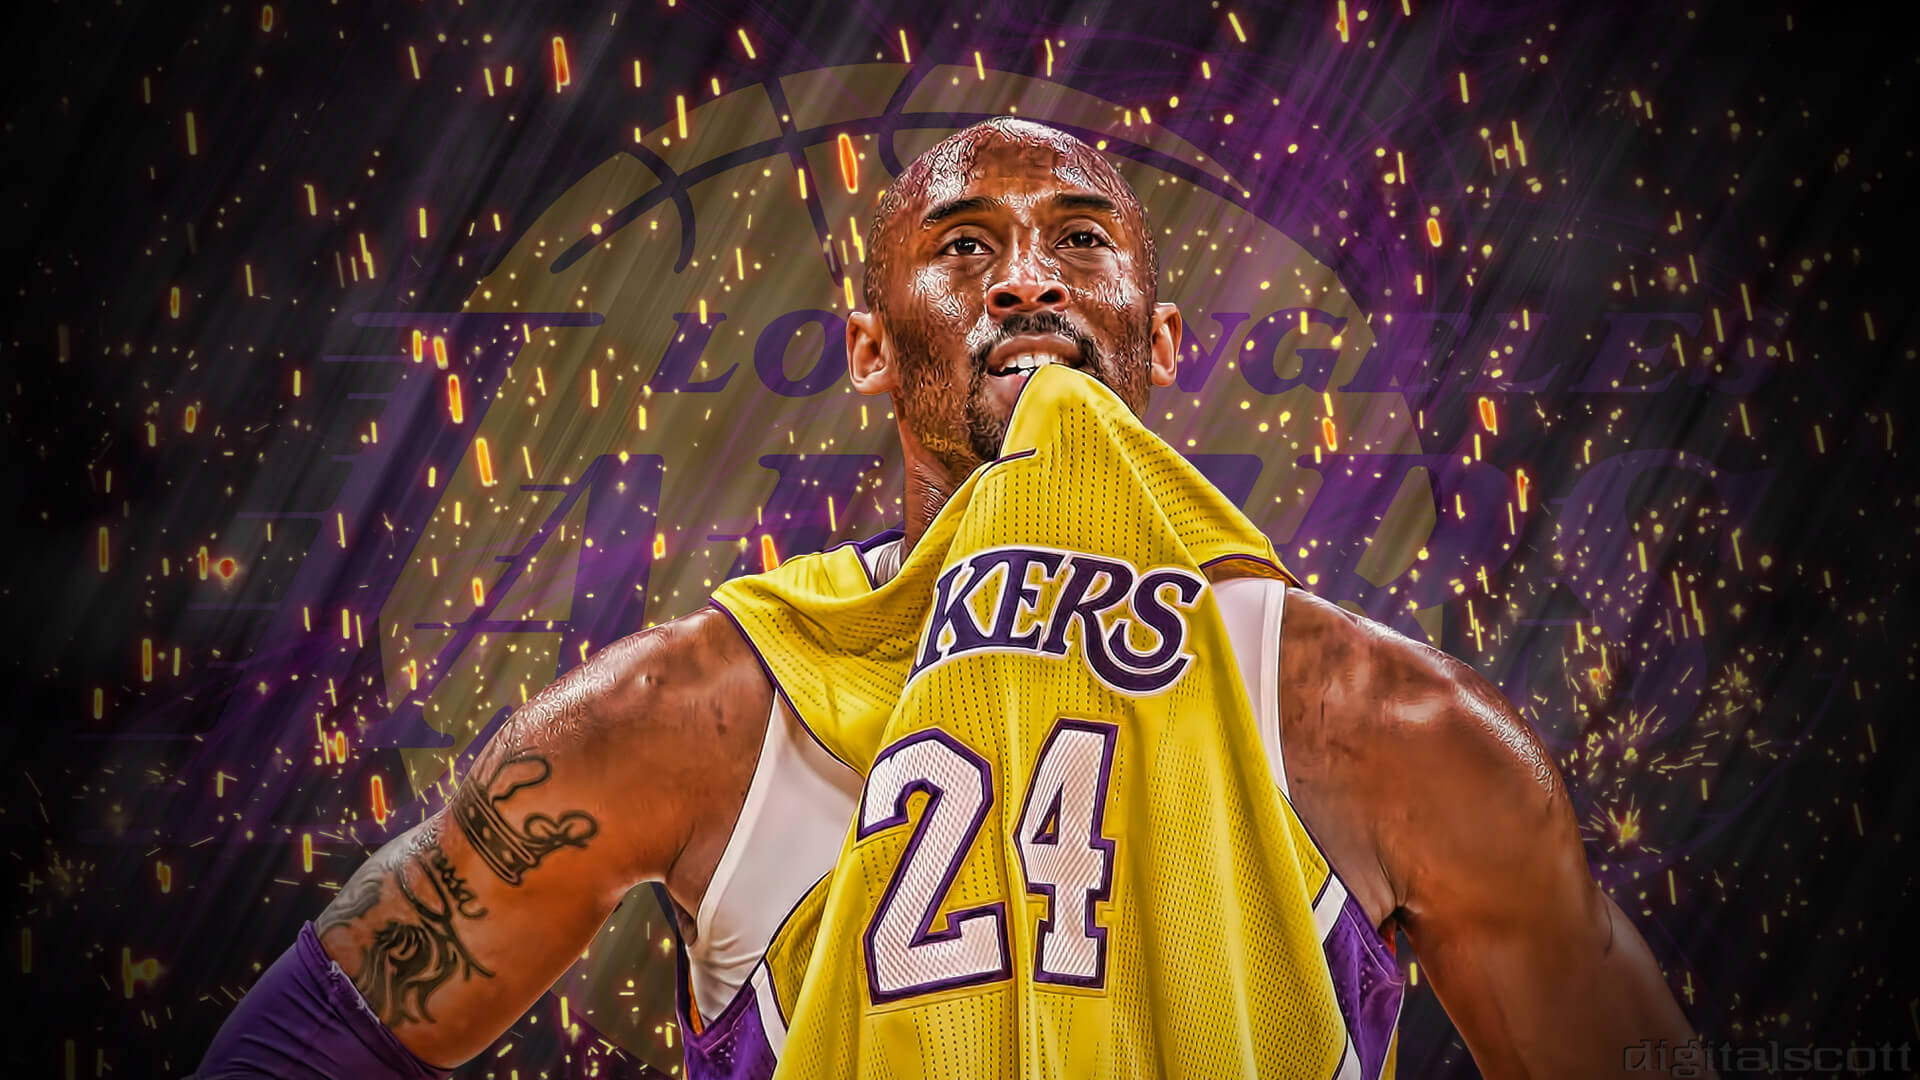 Kobe Bryant to be inducted into NBA Basketball Hall of Fame 2020 class